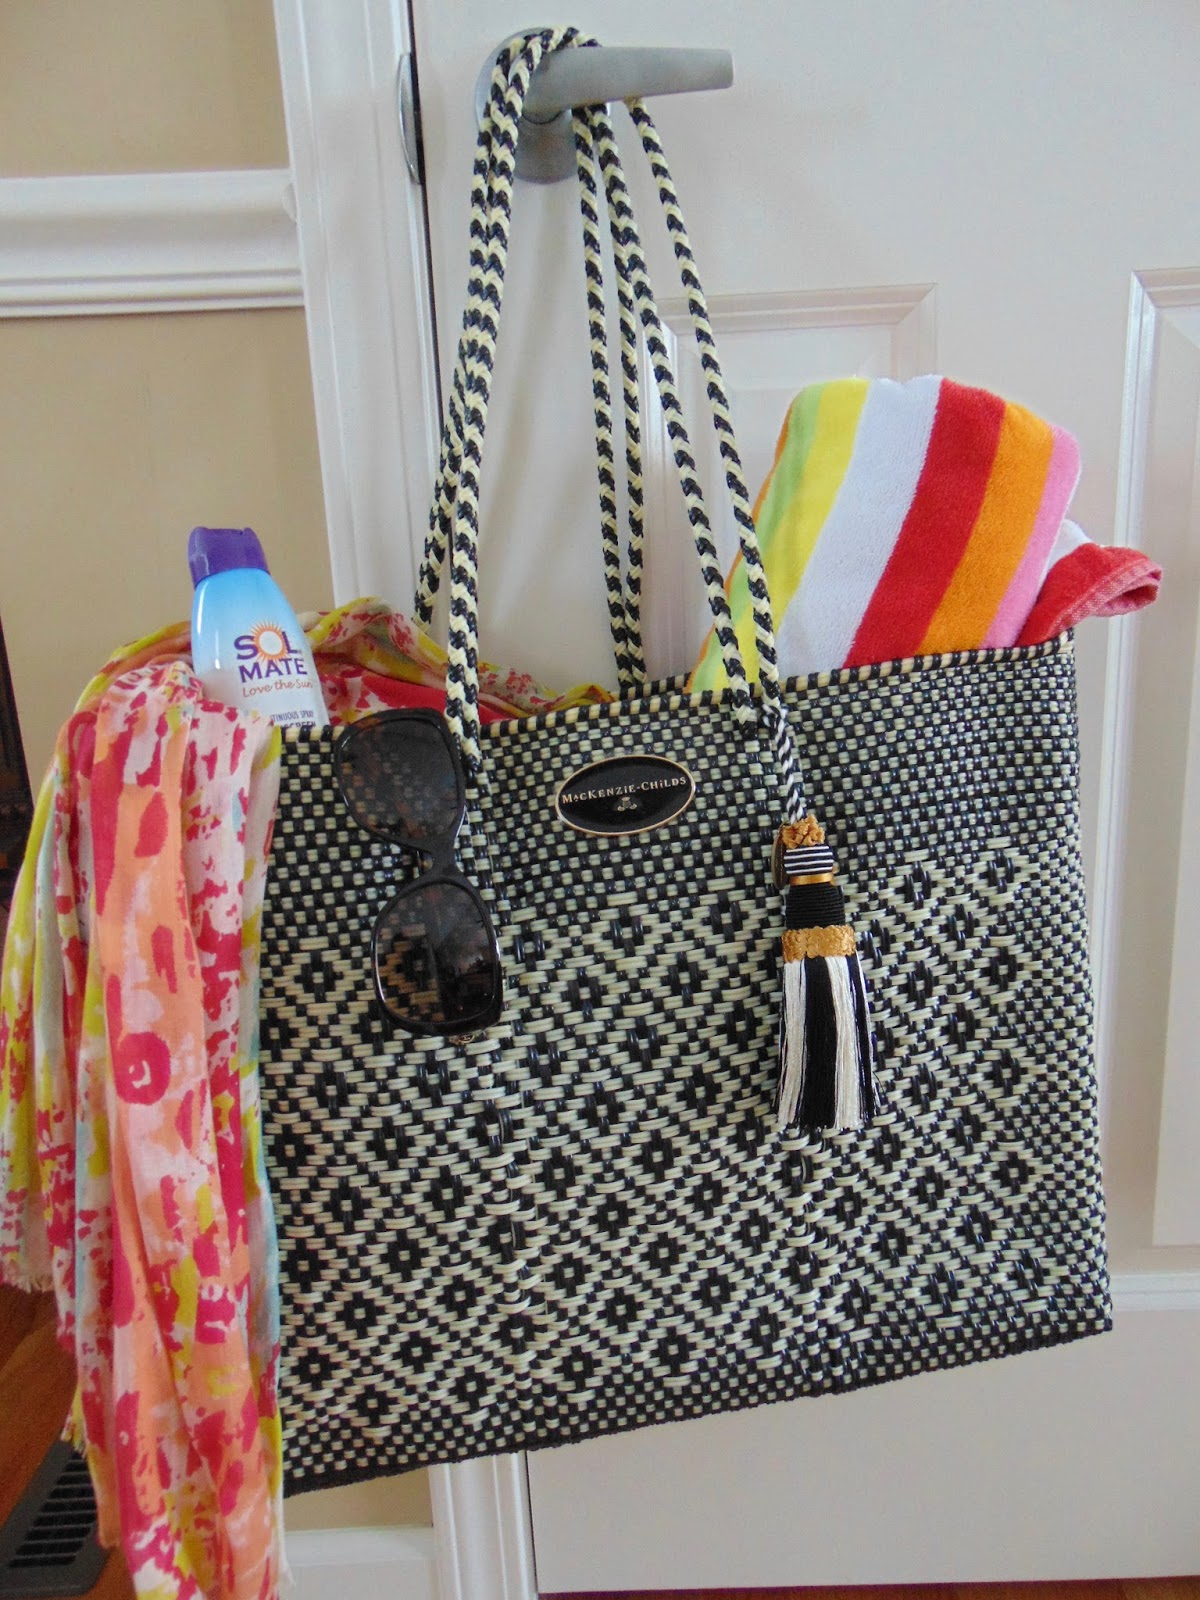 Pandoras Box Mackenzie Childs Courtyard Tote Giveaway Shopper Bag Black Mc It Is The Ideal Size To Hold All My Beach Gear A Good Book As Well Lunch